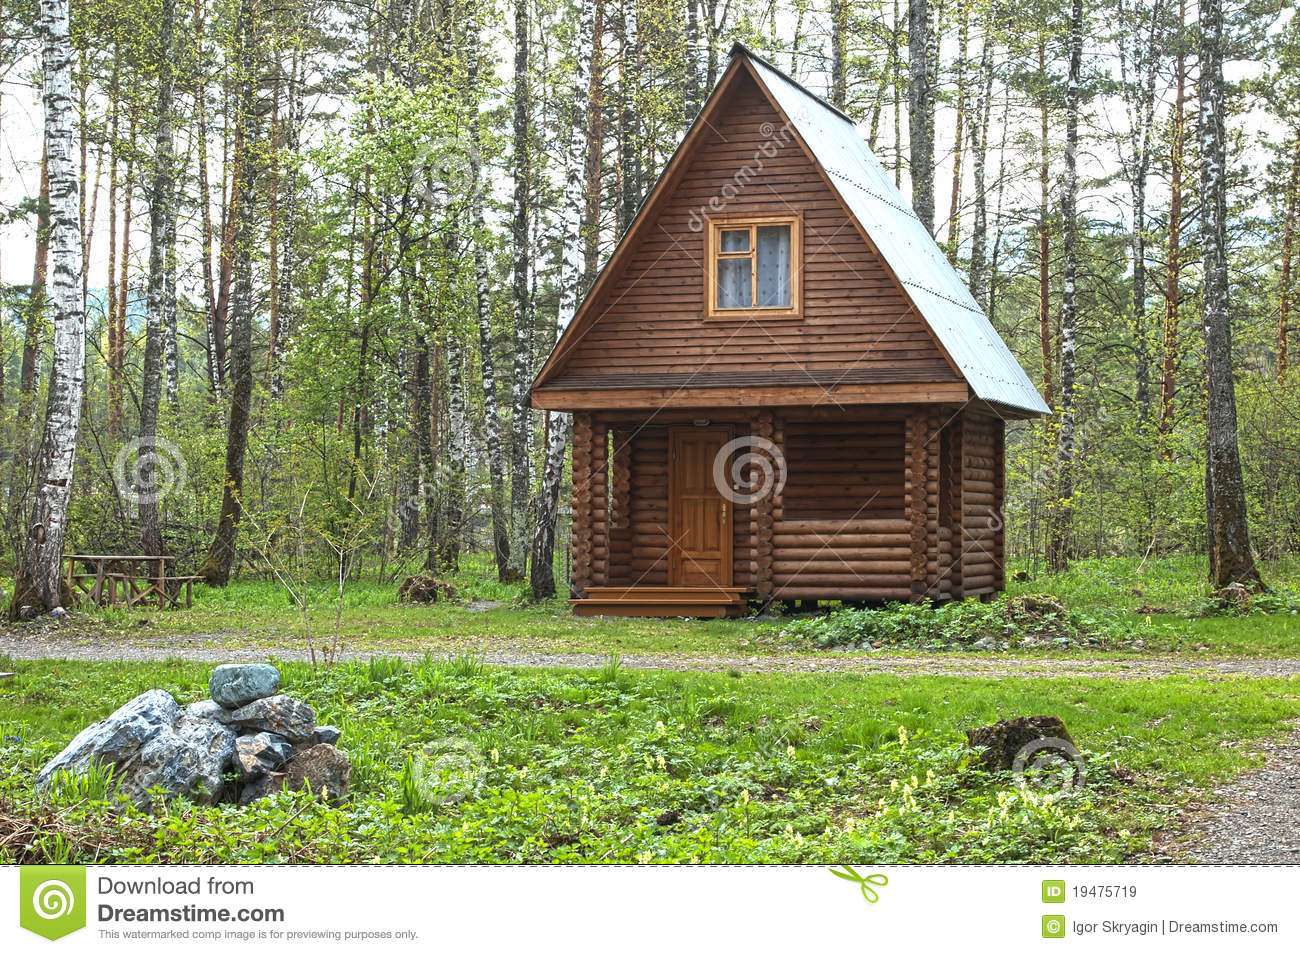 how to build house if you are in centerlink payment